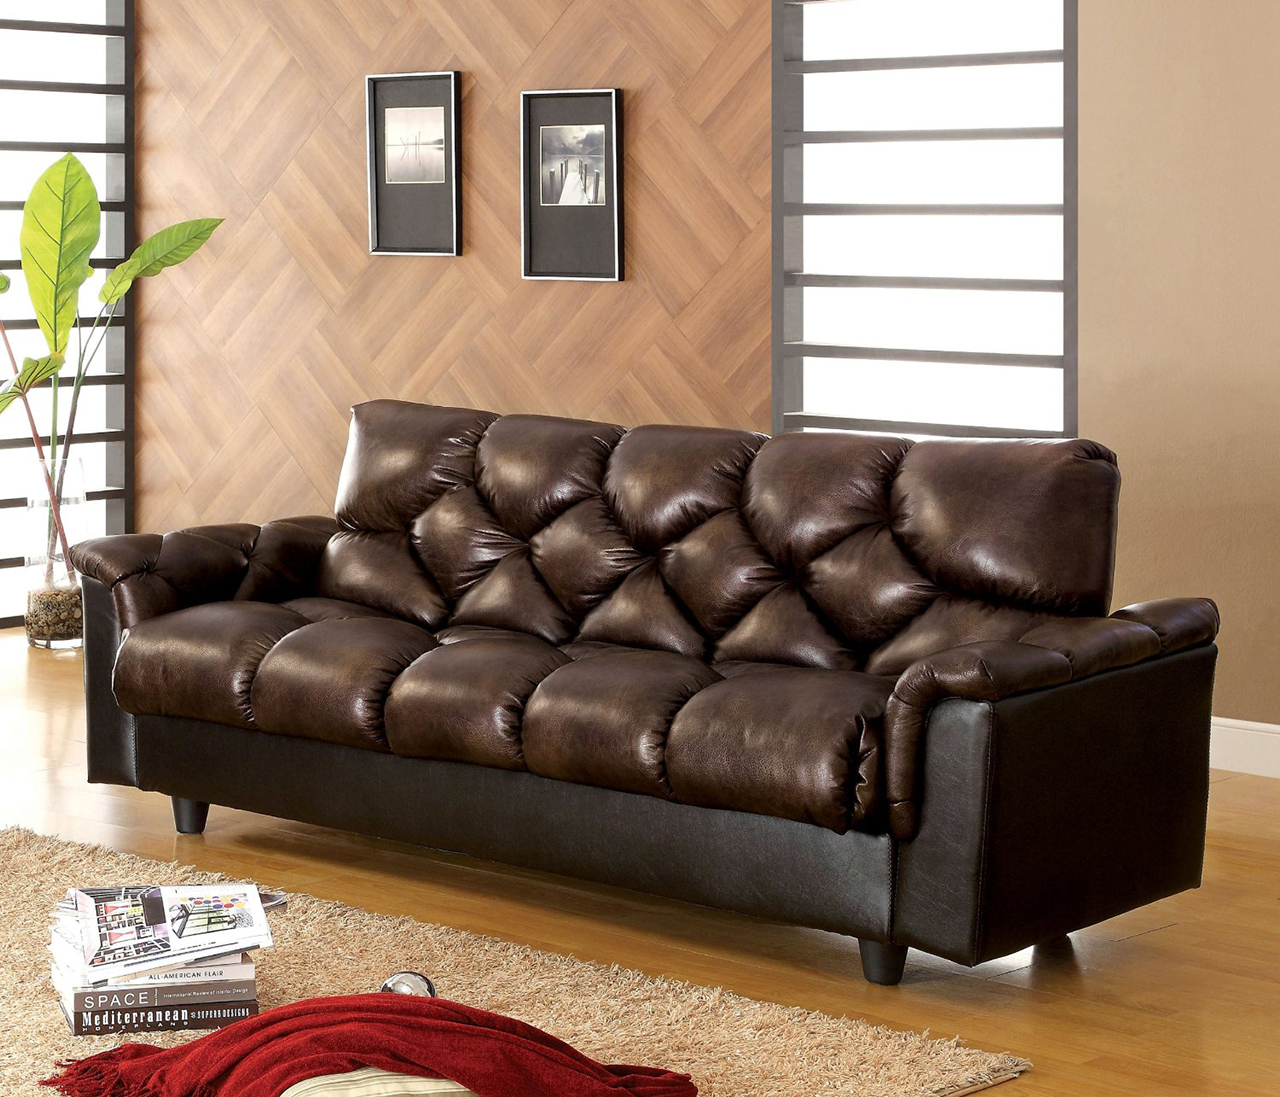 Bon Carlington Leather Vinyl Storage Sleeper Sofa